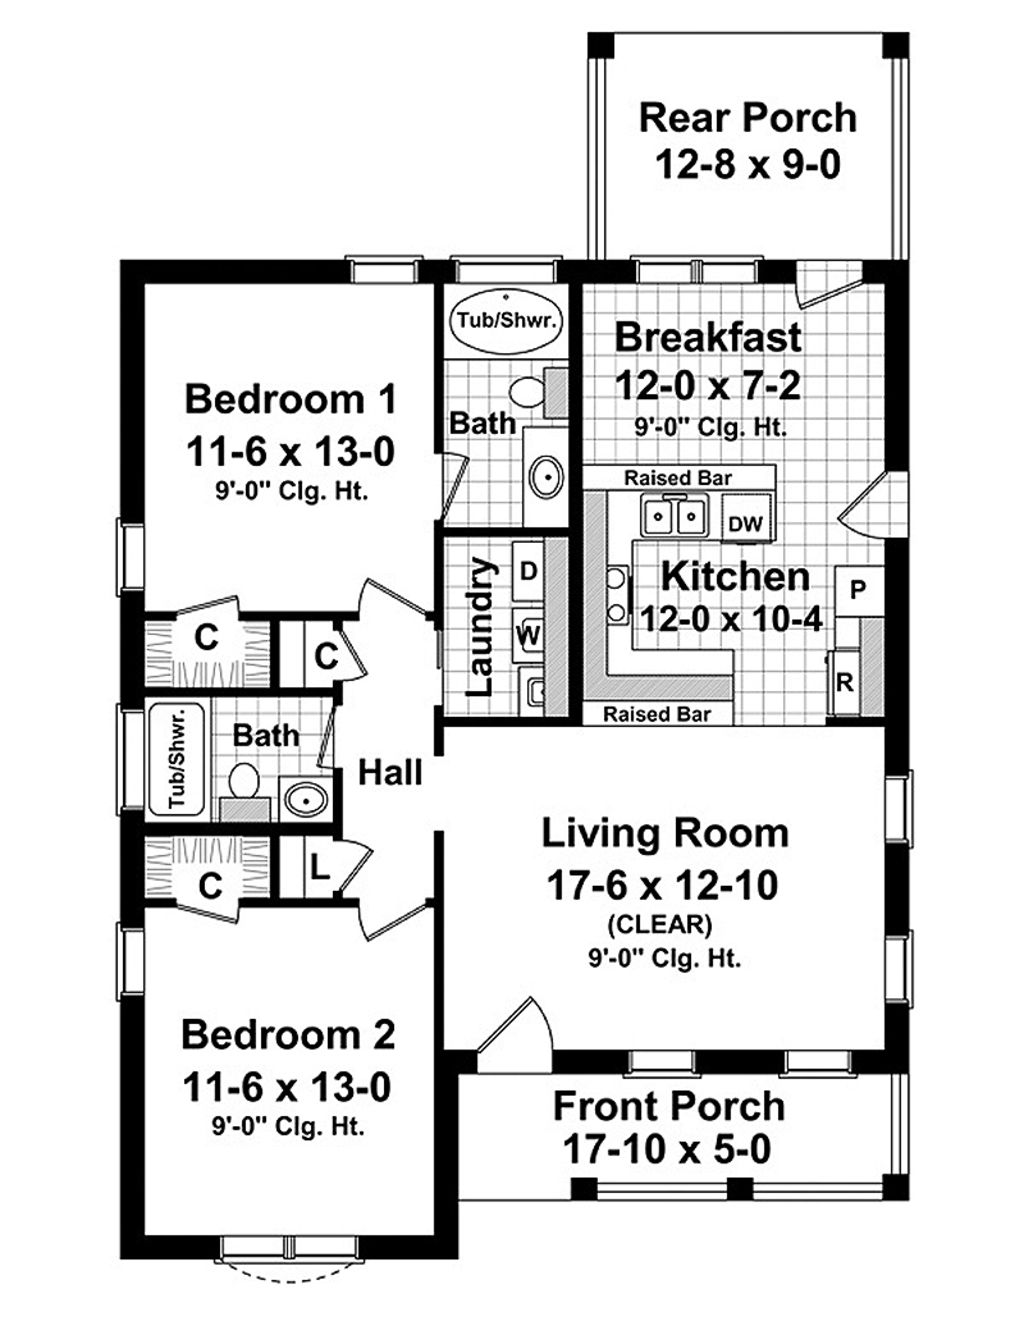 Cottage style house plan 2 beds baths 1100 sq ft for 10 x 12 living room layout